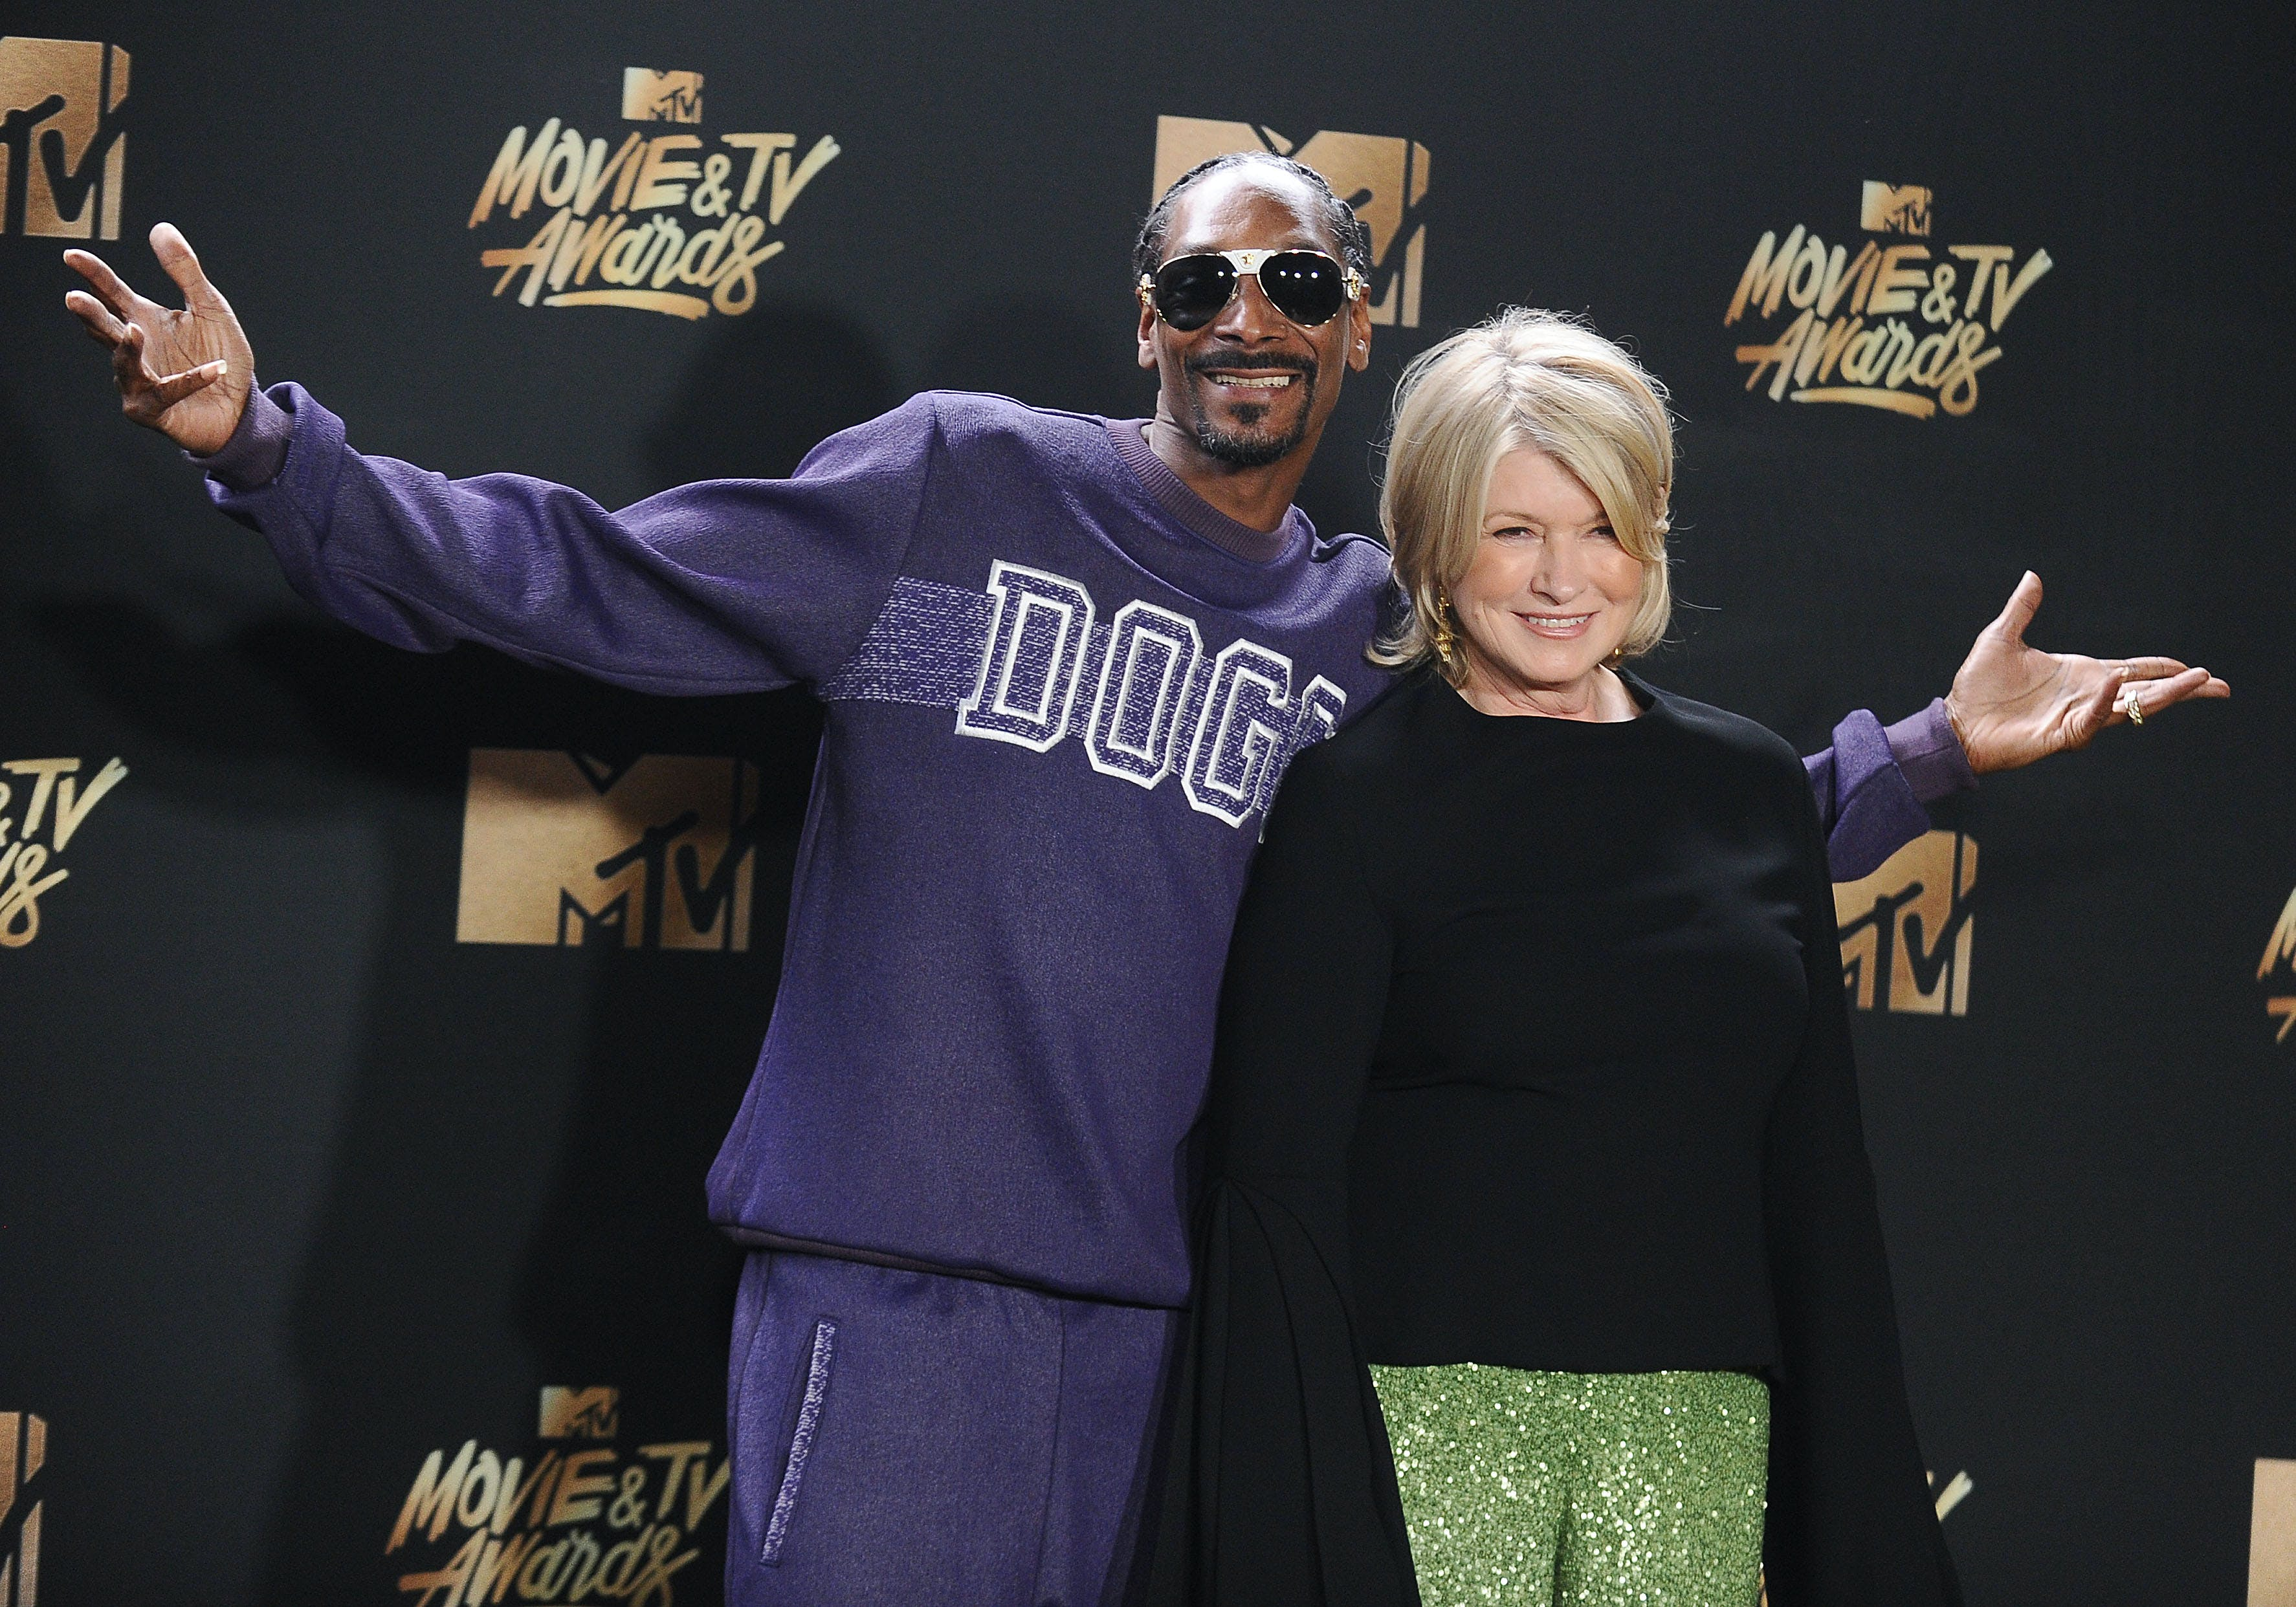 Martha Stewart and Snoop Dogg pose together